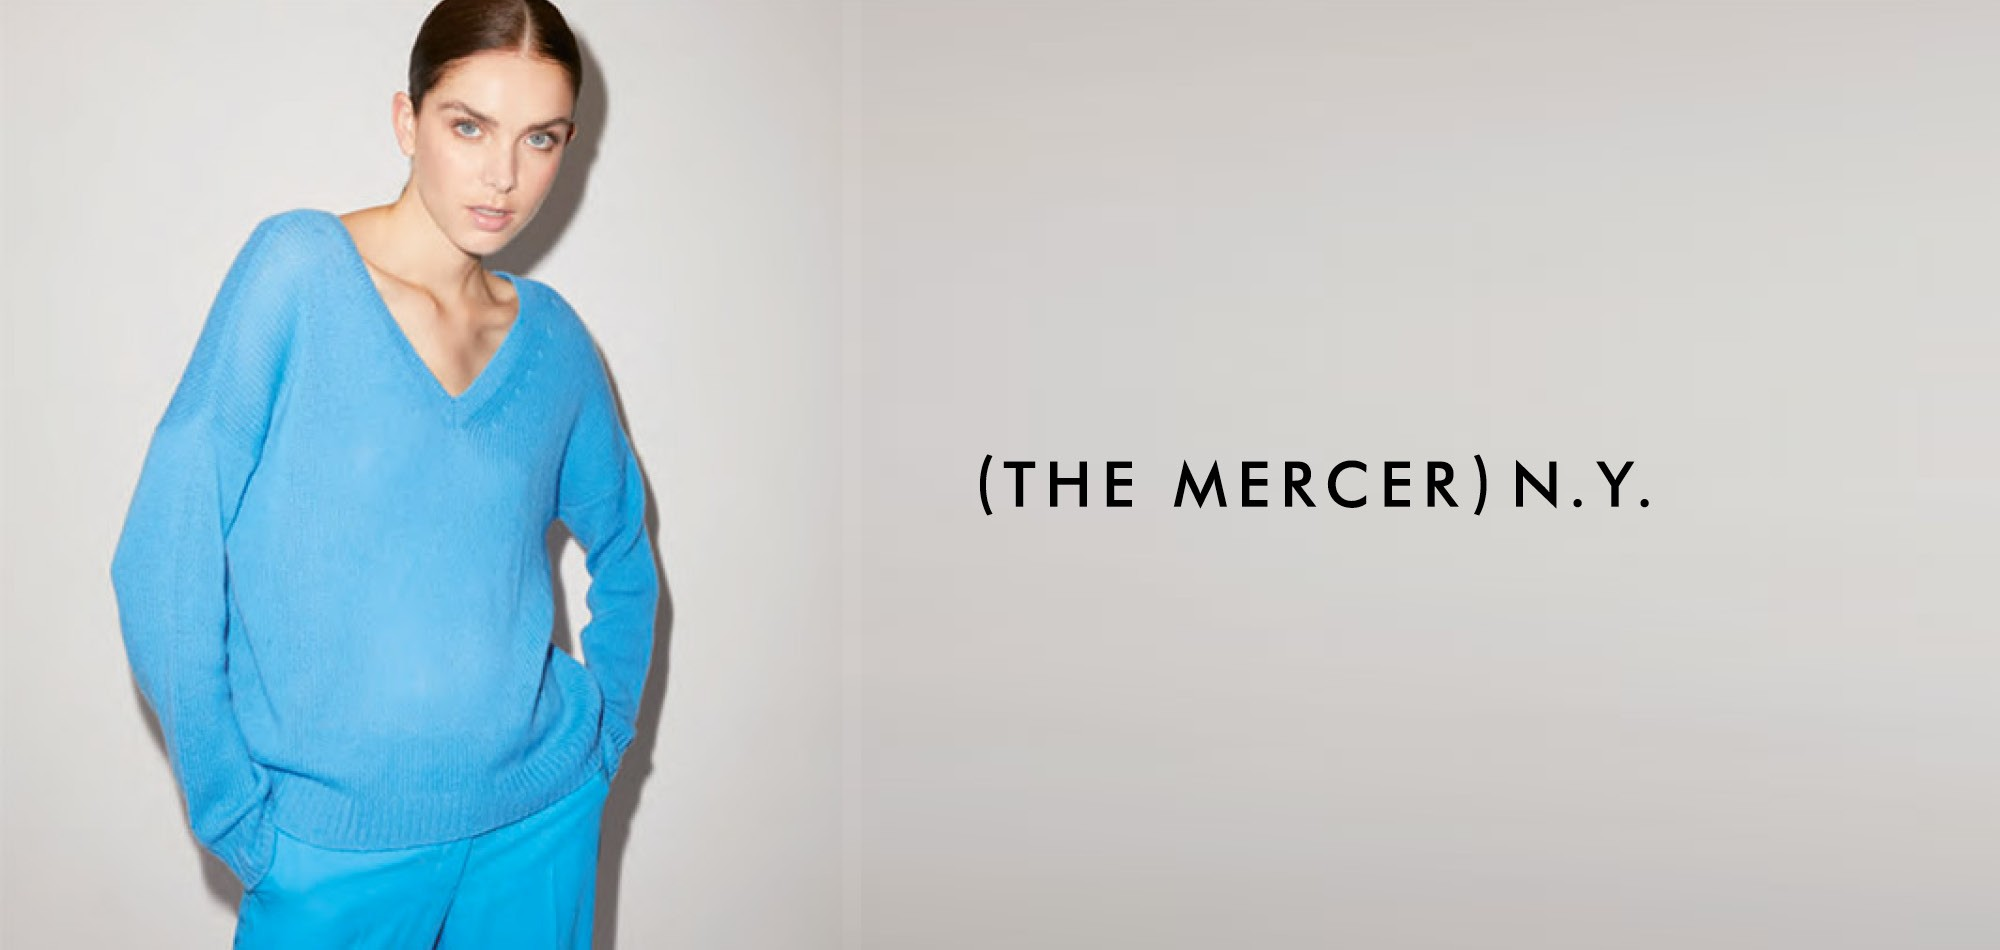 The Mercer (N.Y)